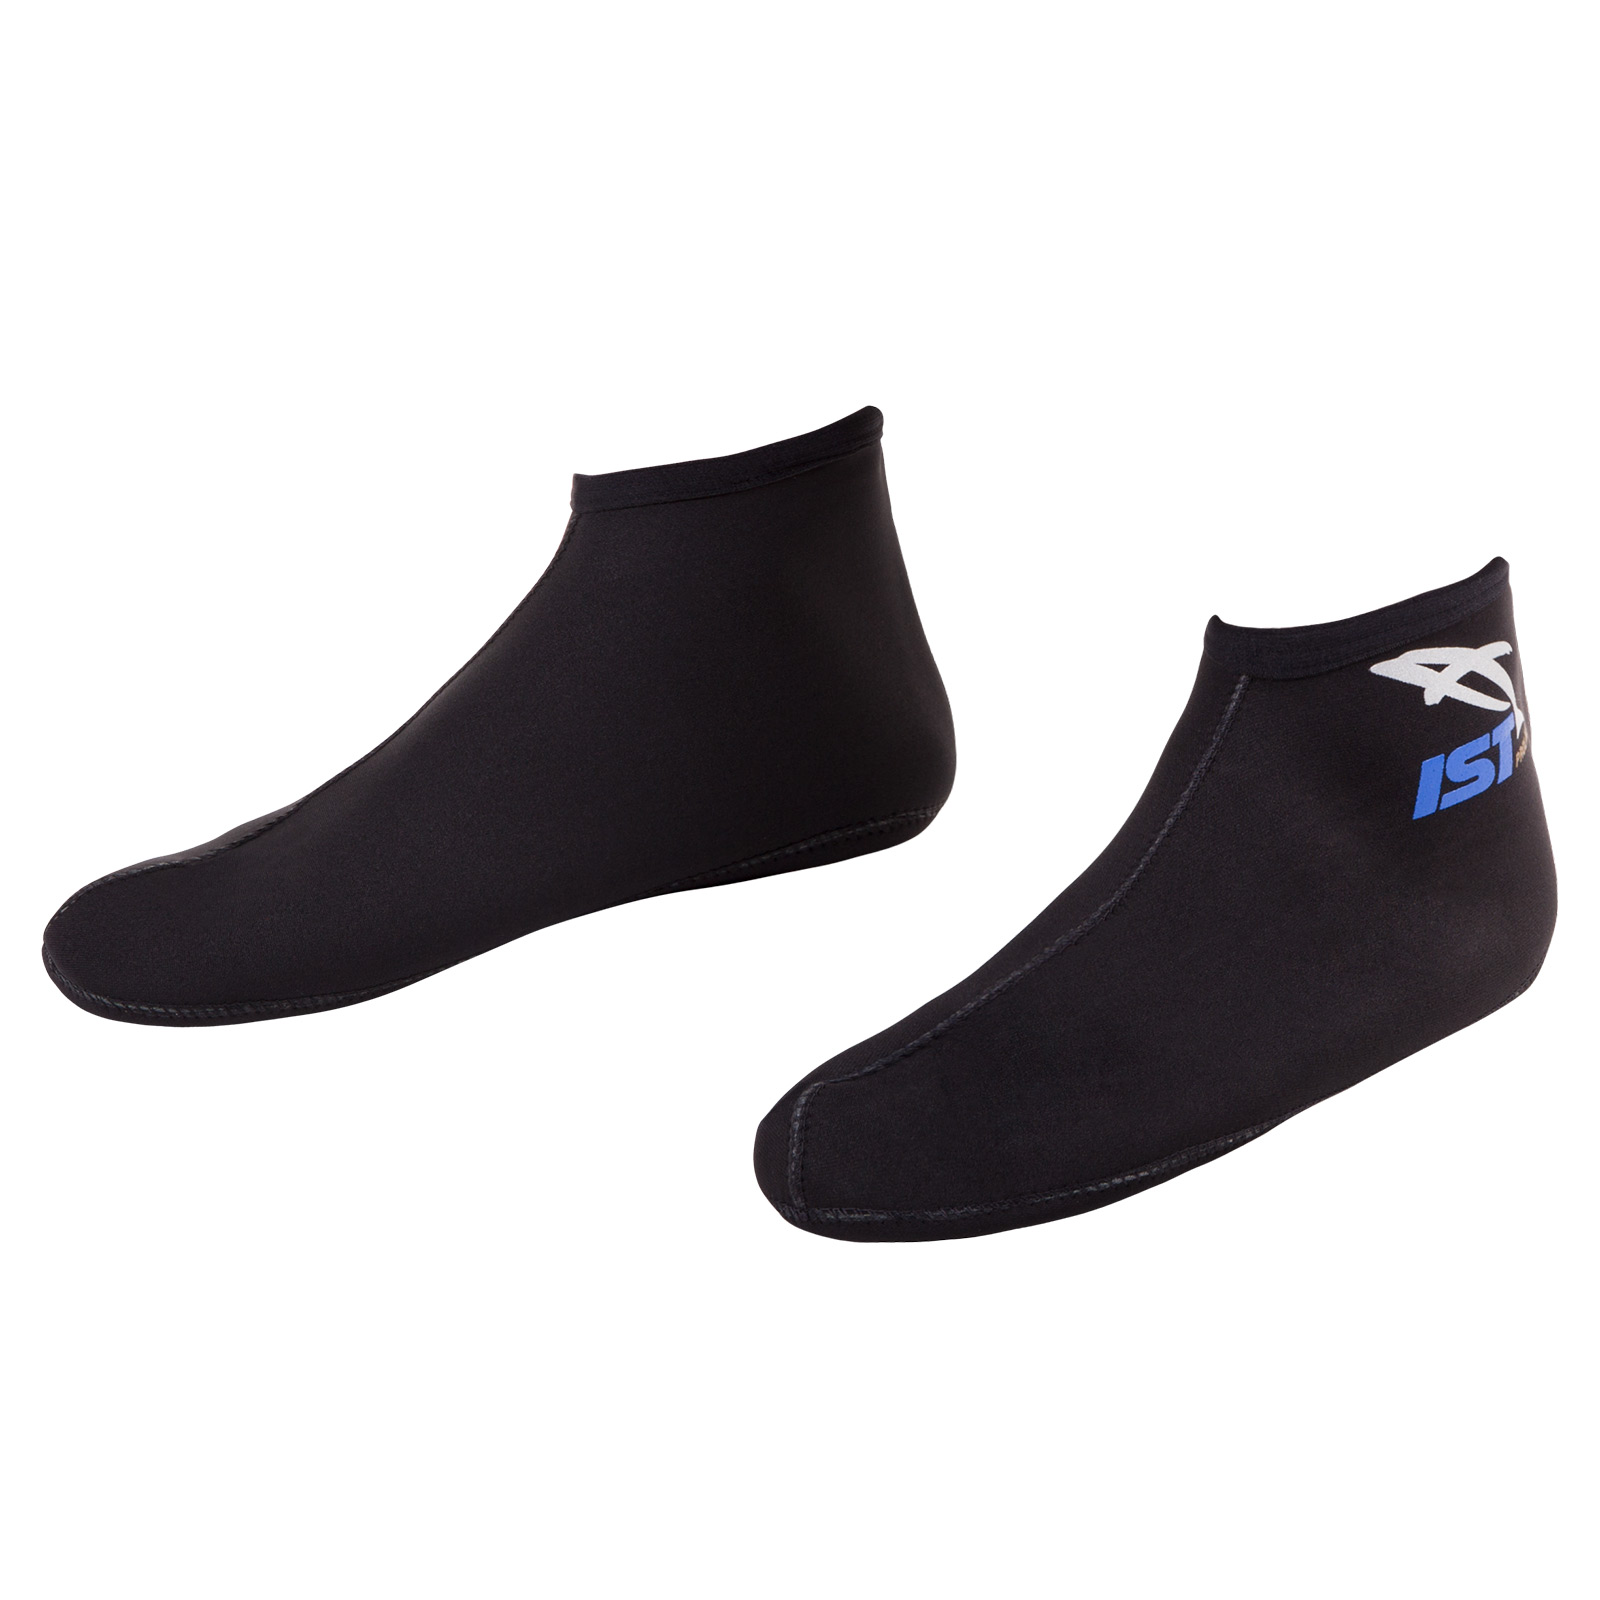 3mm Low Cut Neoprene Sock